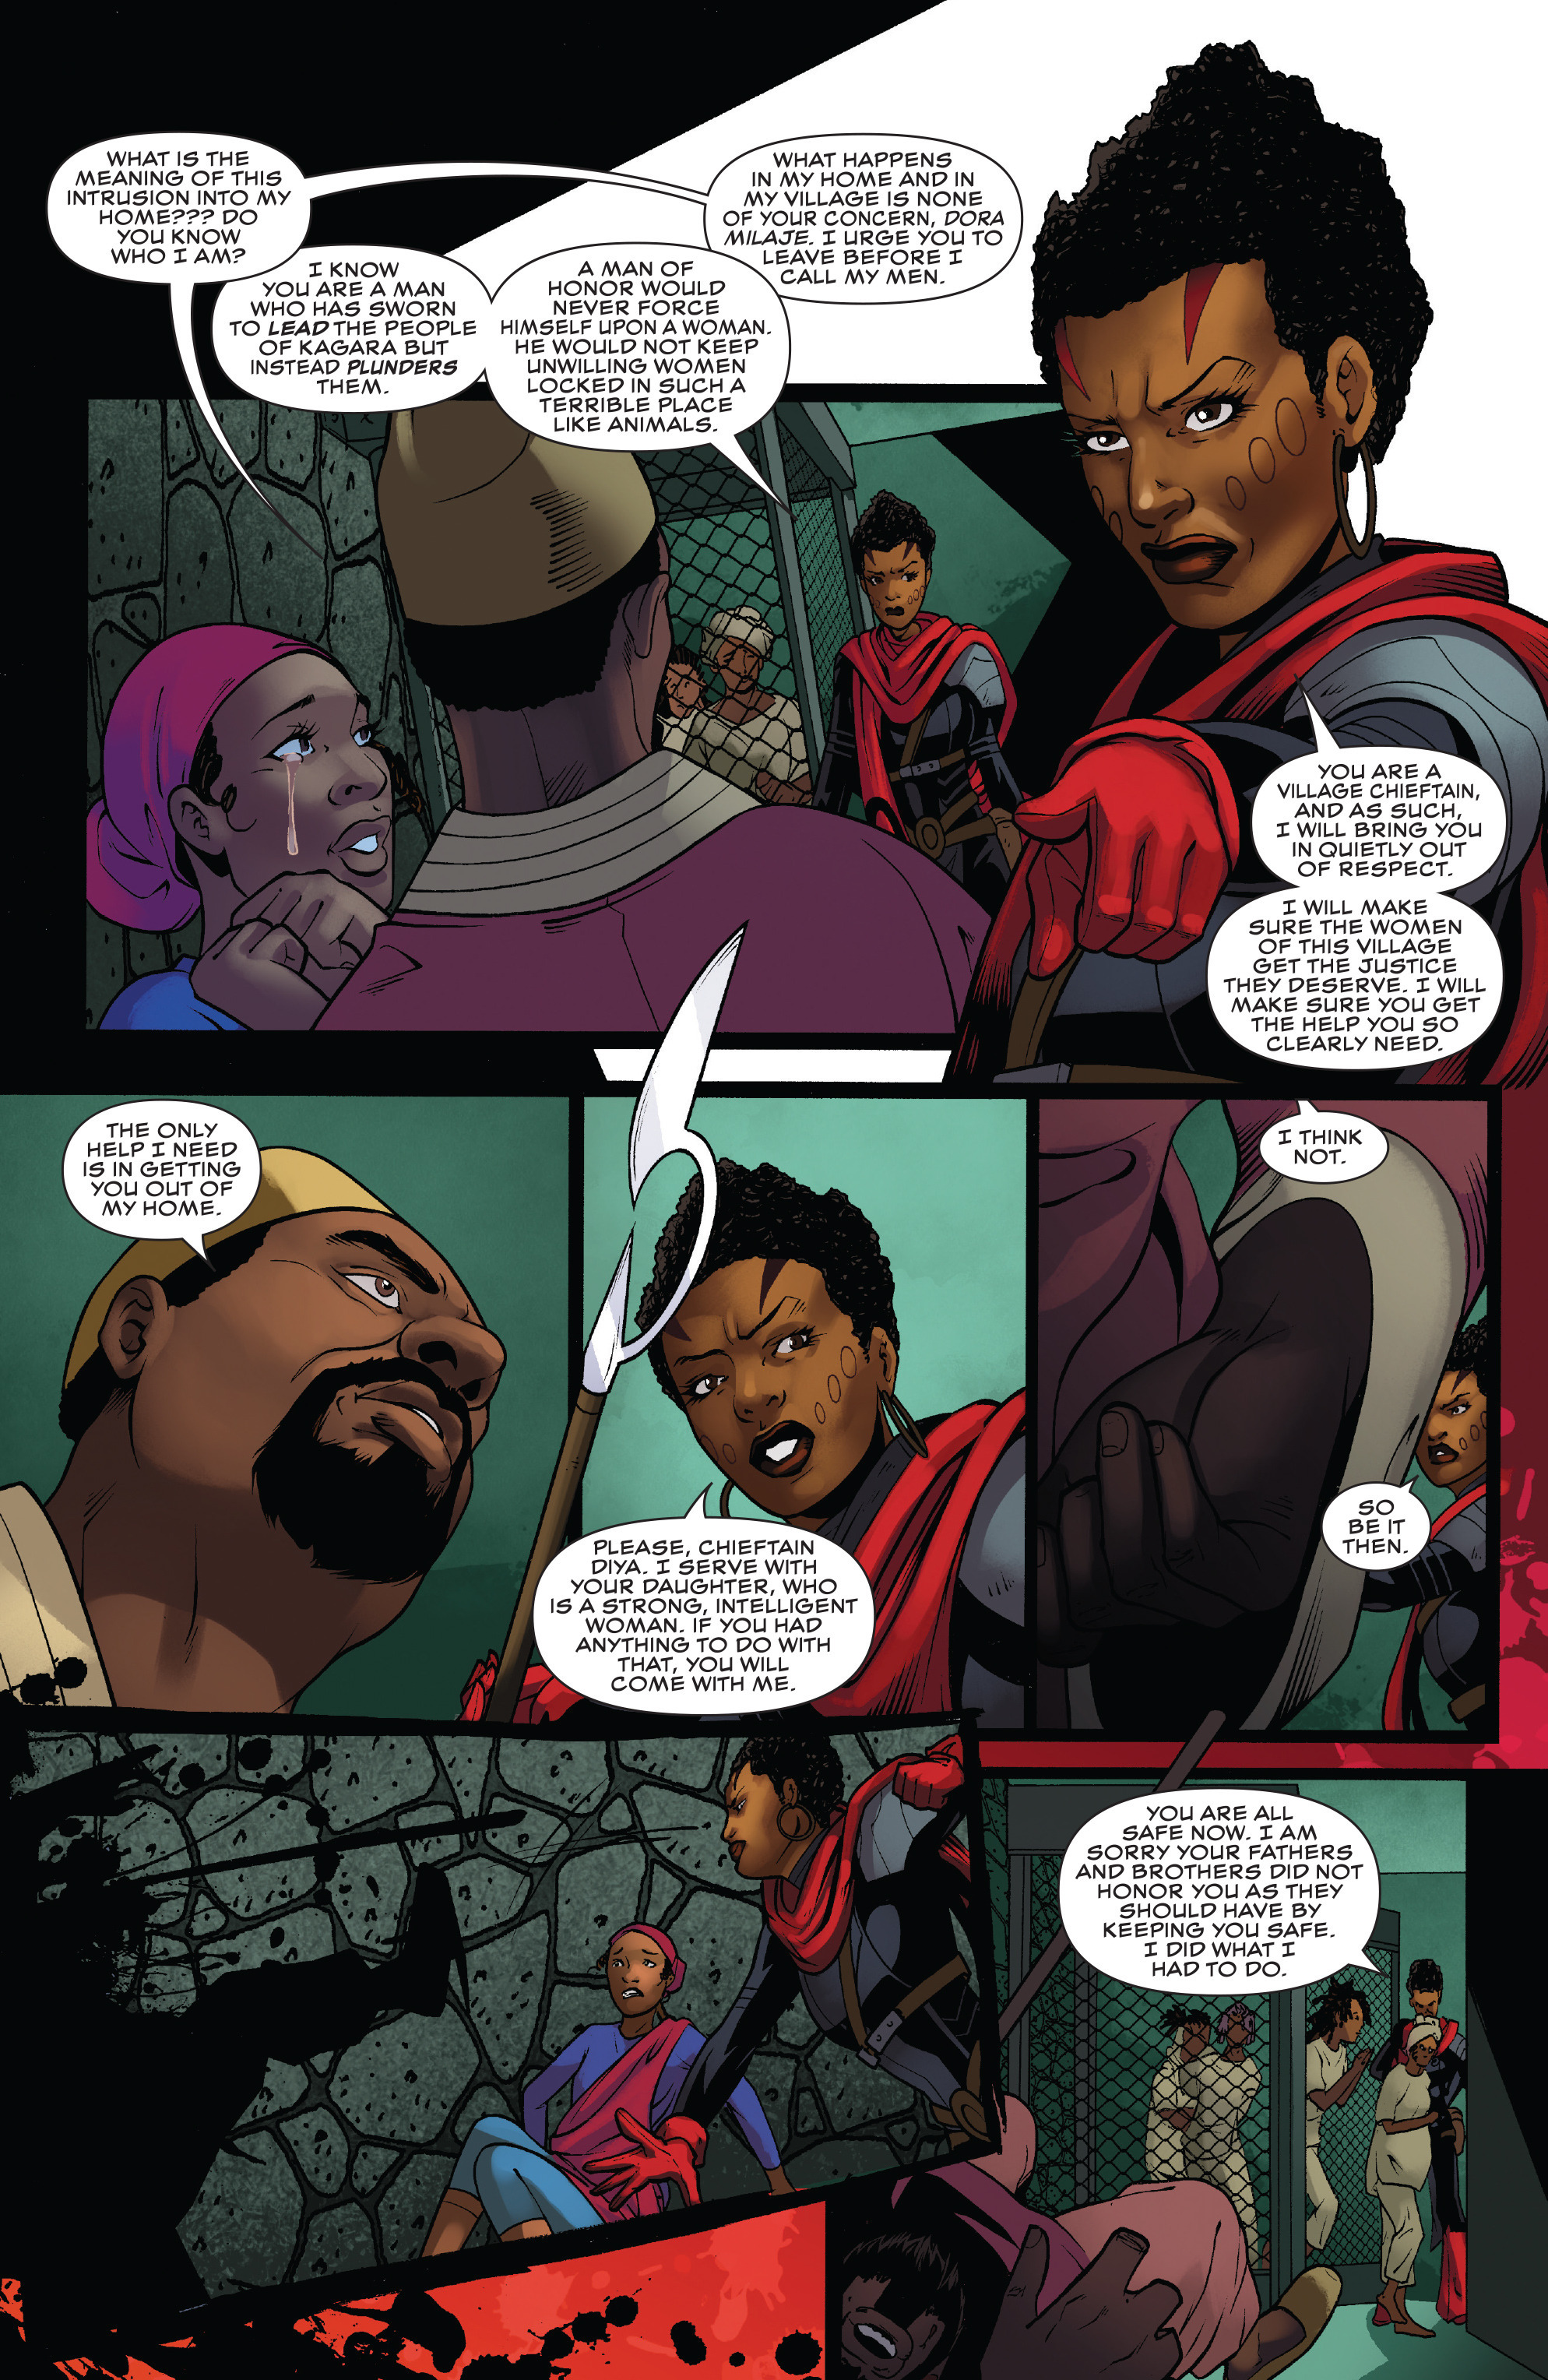 Read online Black Panther: World of Wakanda comic -  Issue #4 - 18